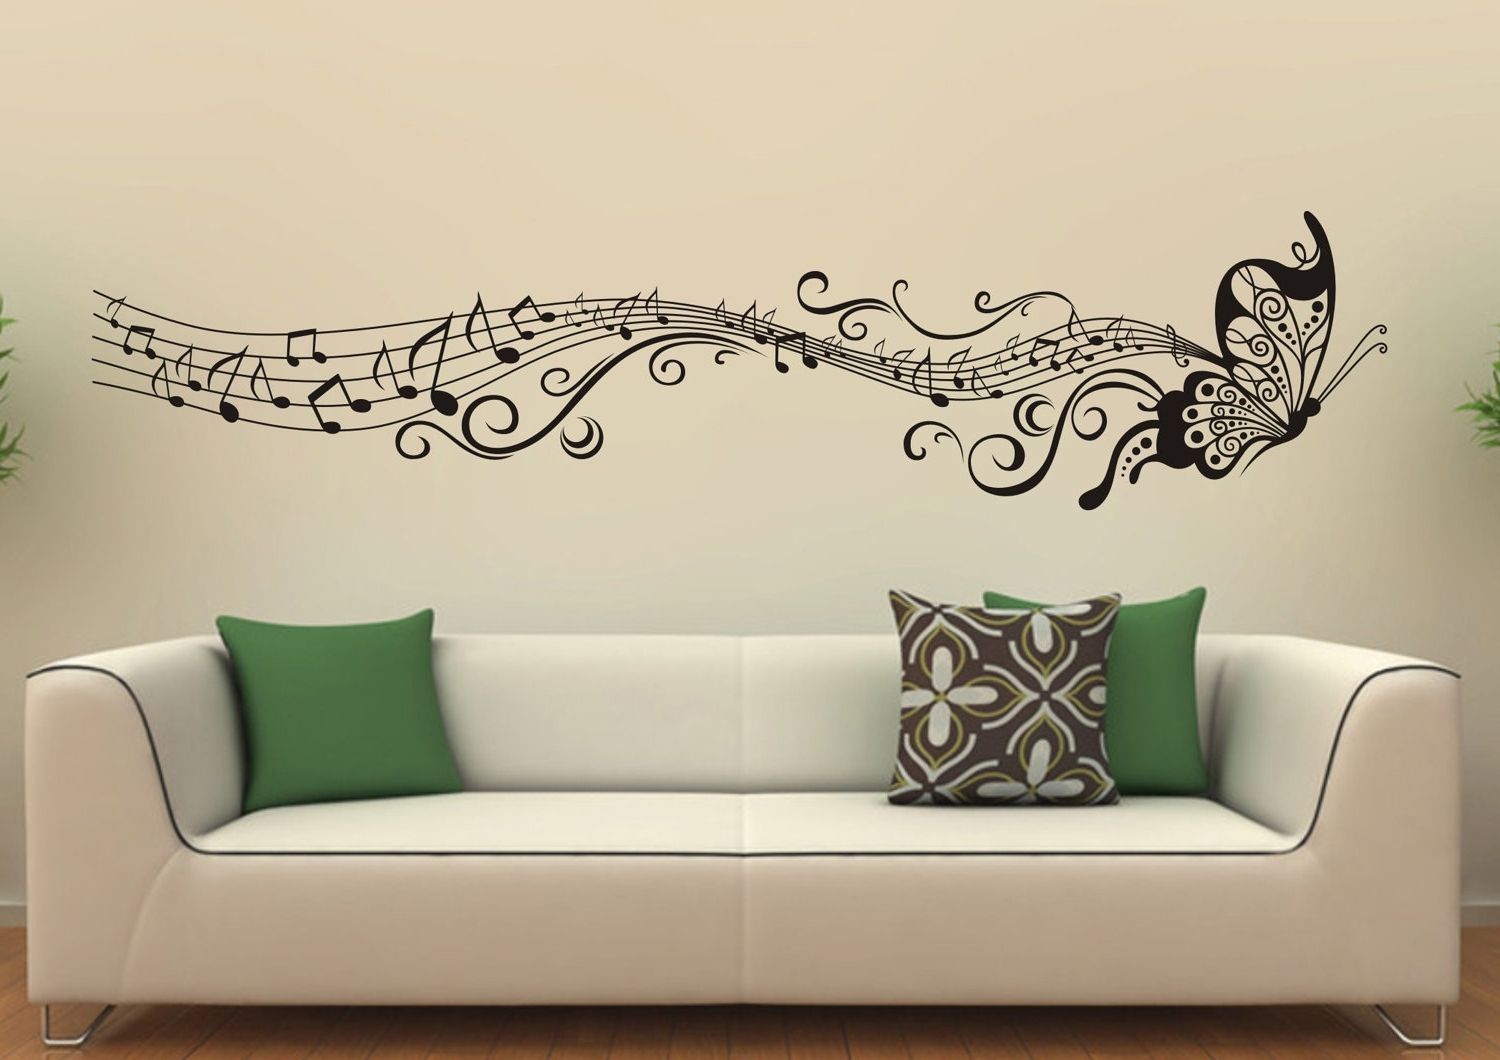 2018 Wall Art Designs: Home Decor Wall Art Home Decor Art Orcheap Within Music Themed Wall Art (View 2 of 15)